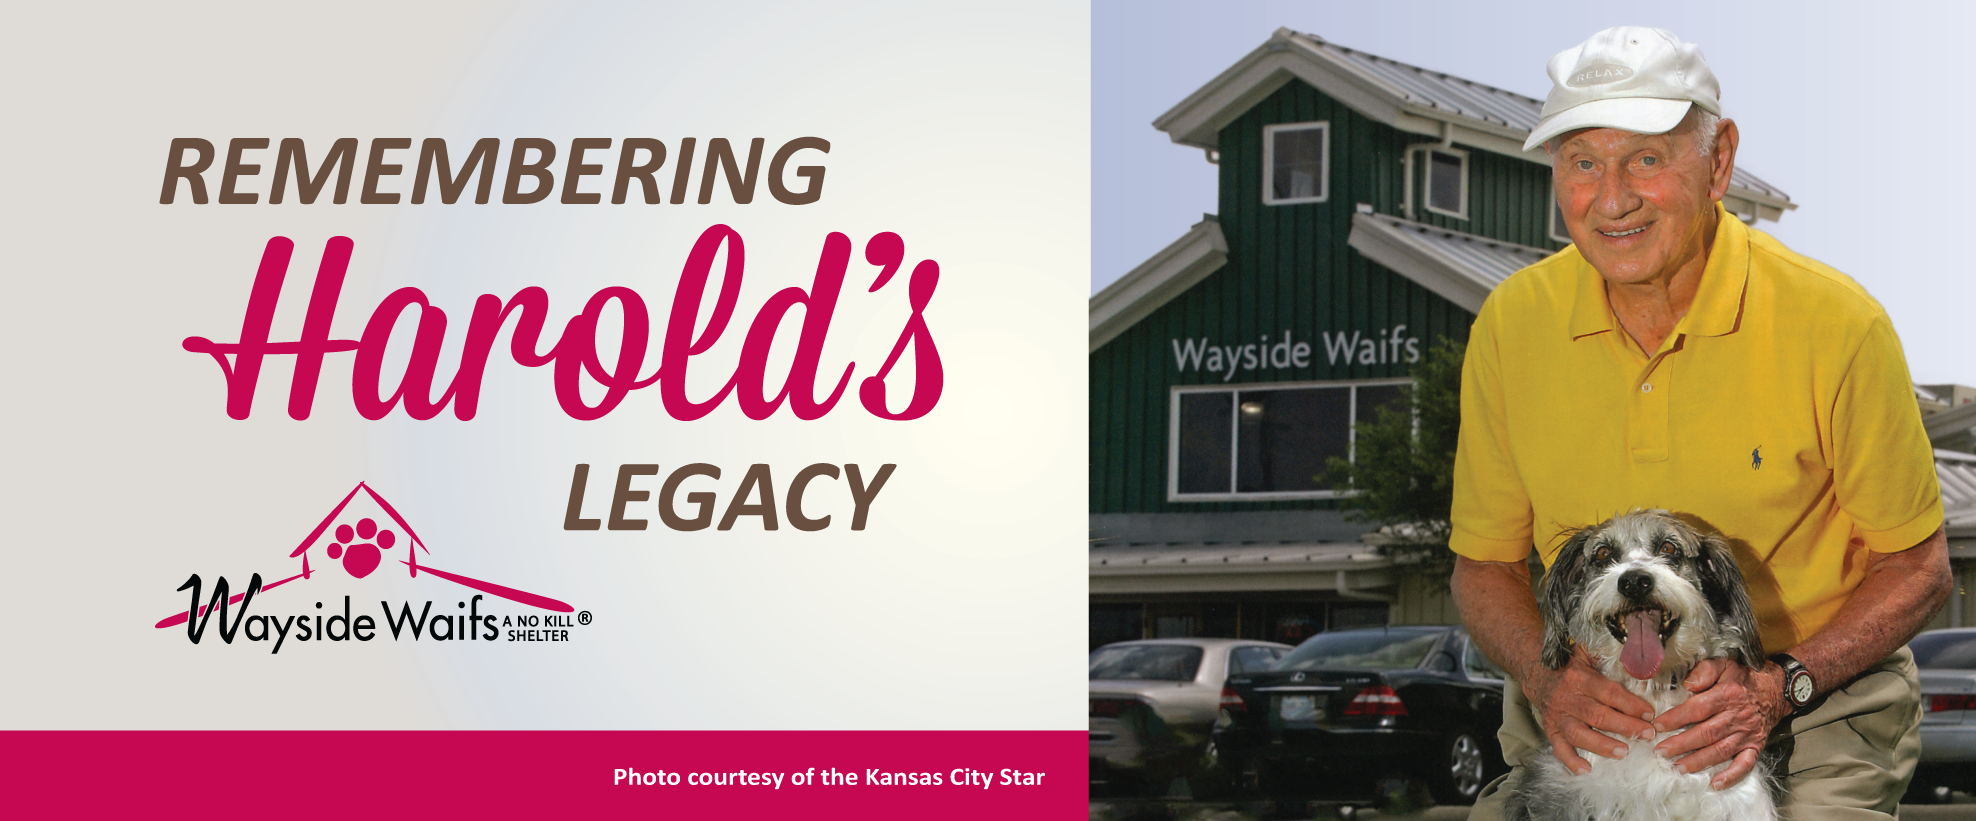 Read about Harold's Wayside Legacy